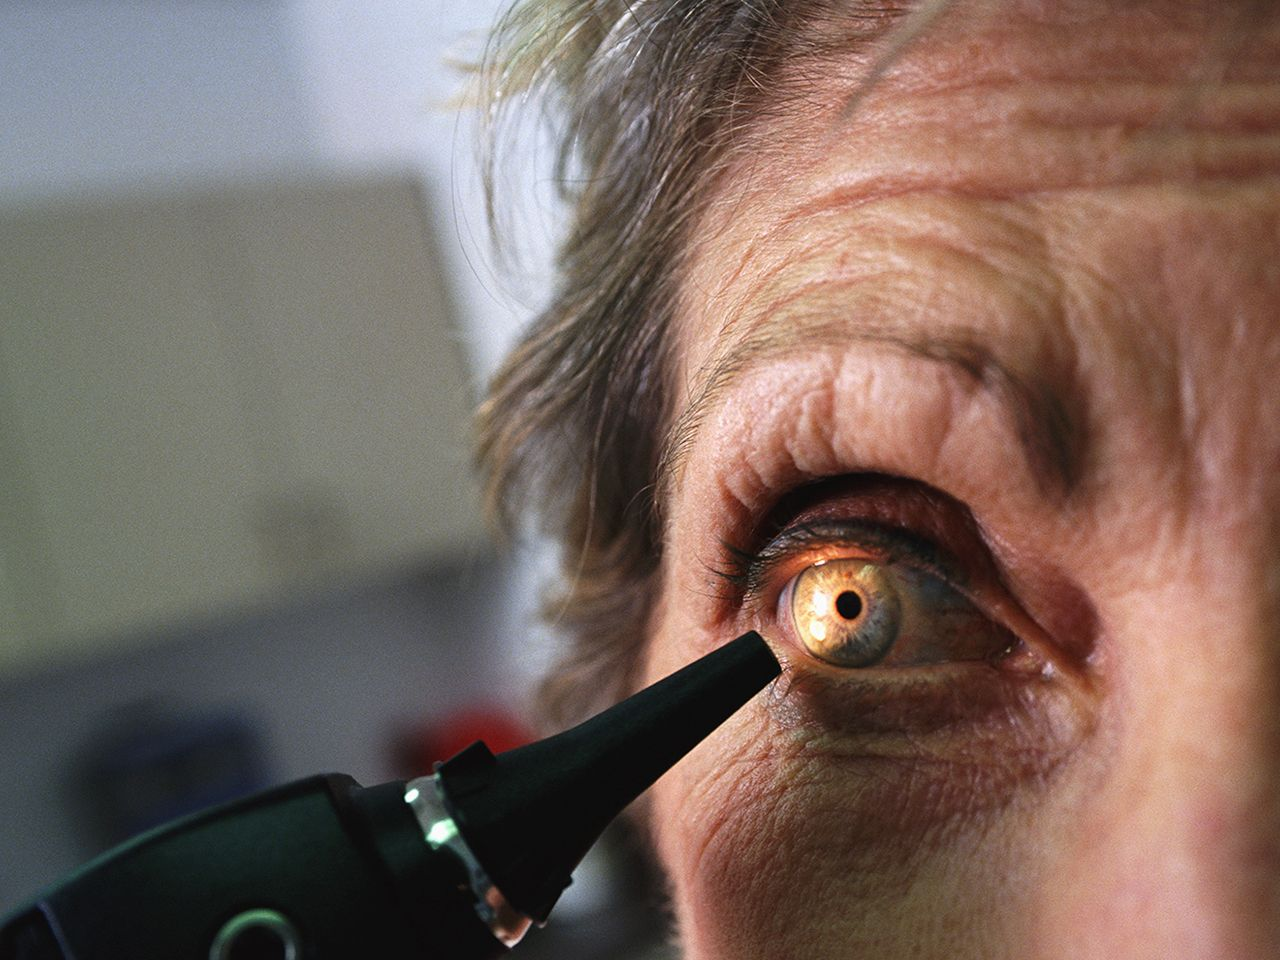 Why more boomers are getting cataract surgery at a younger age